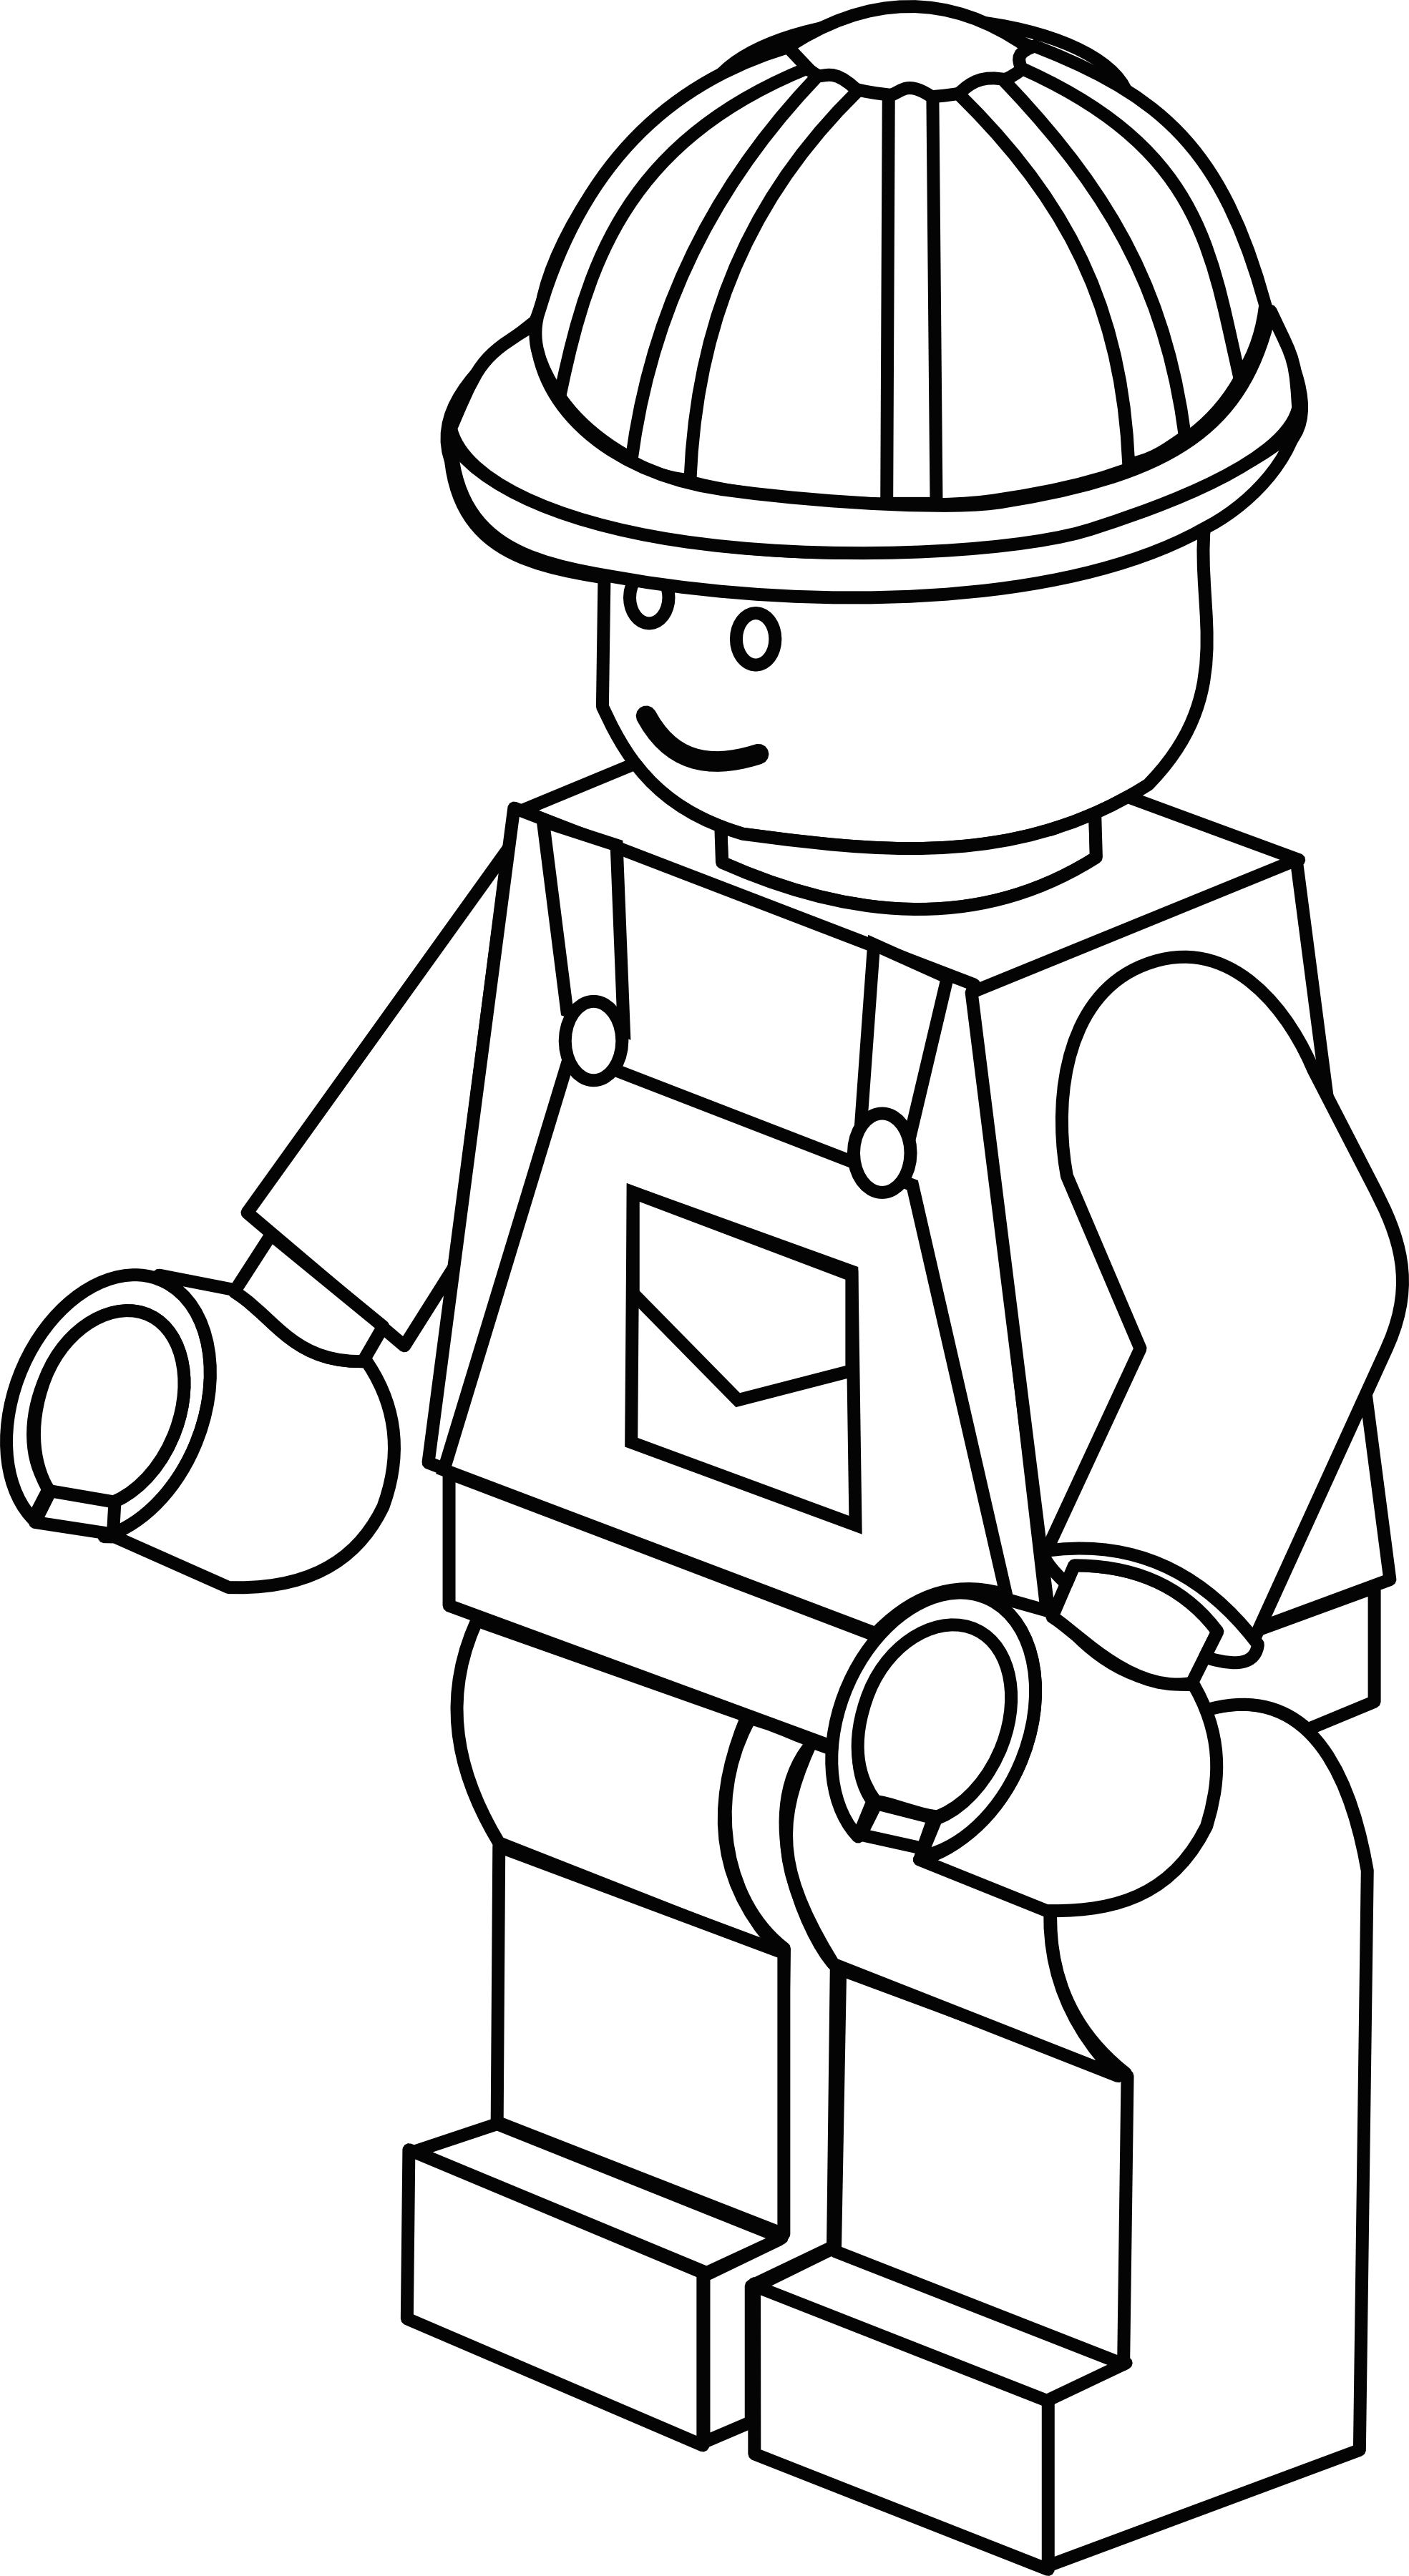 lego pages to color 15 lego jurassic world kleurplaat krijg duizenden lego pages to color